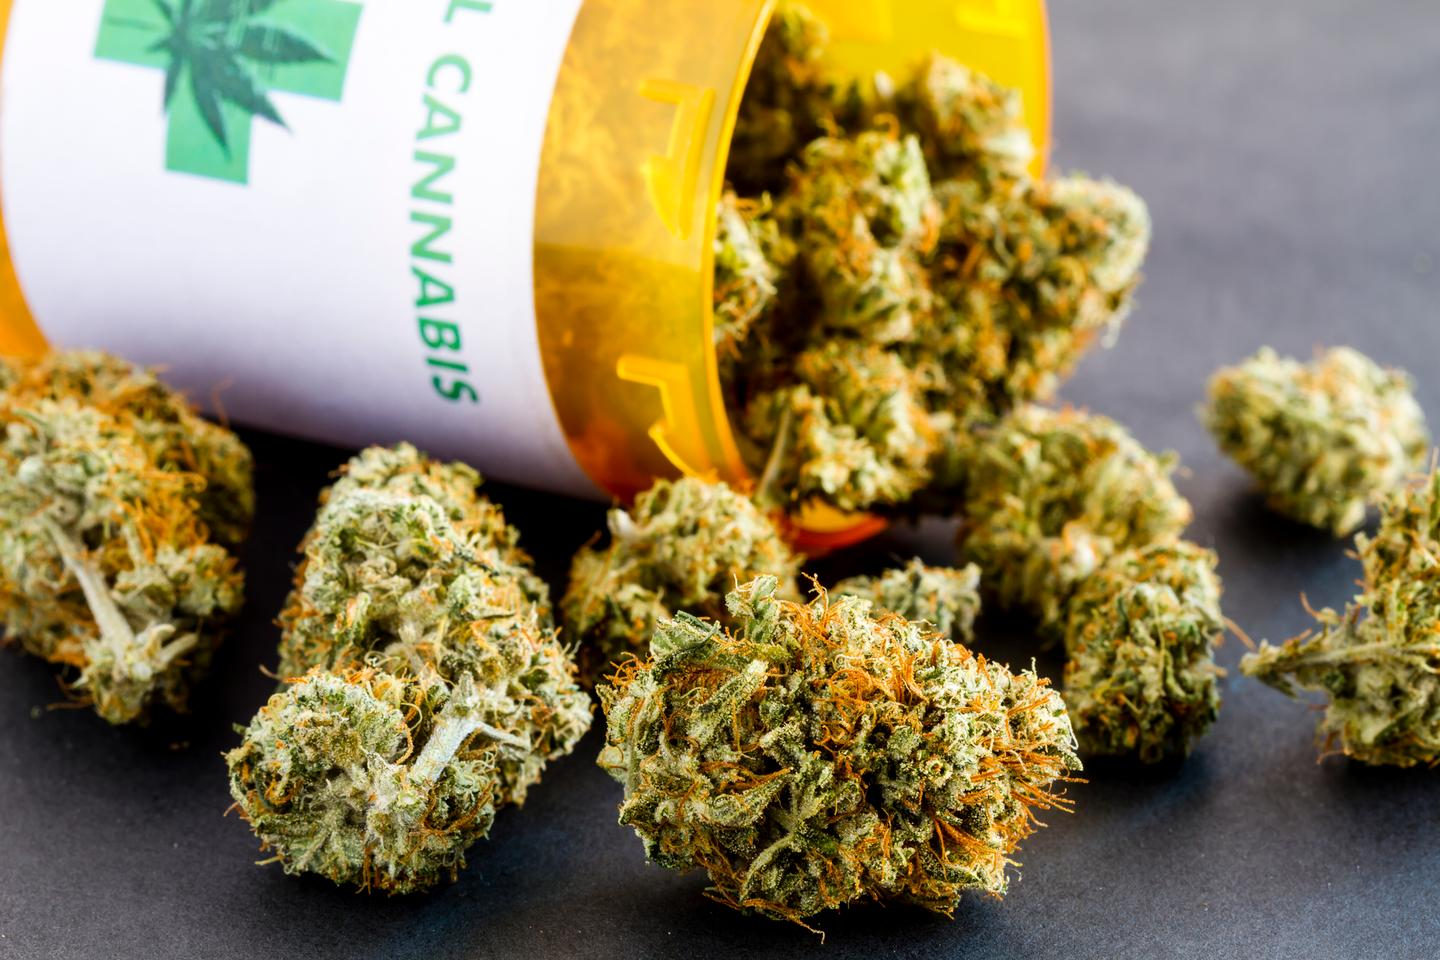 A clinical trial found single small THC doses did reduce acute sensations of pain compared to placebo